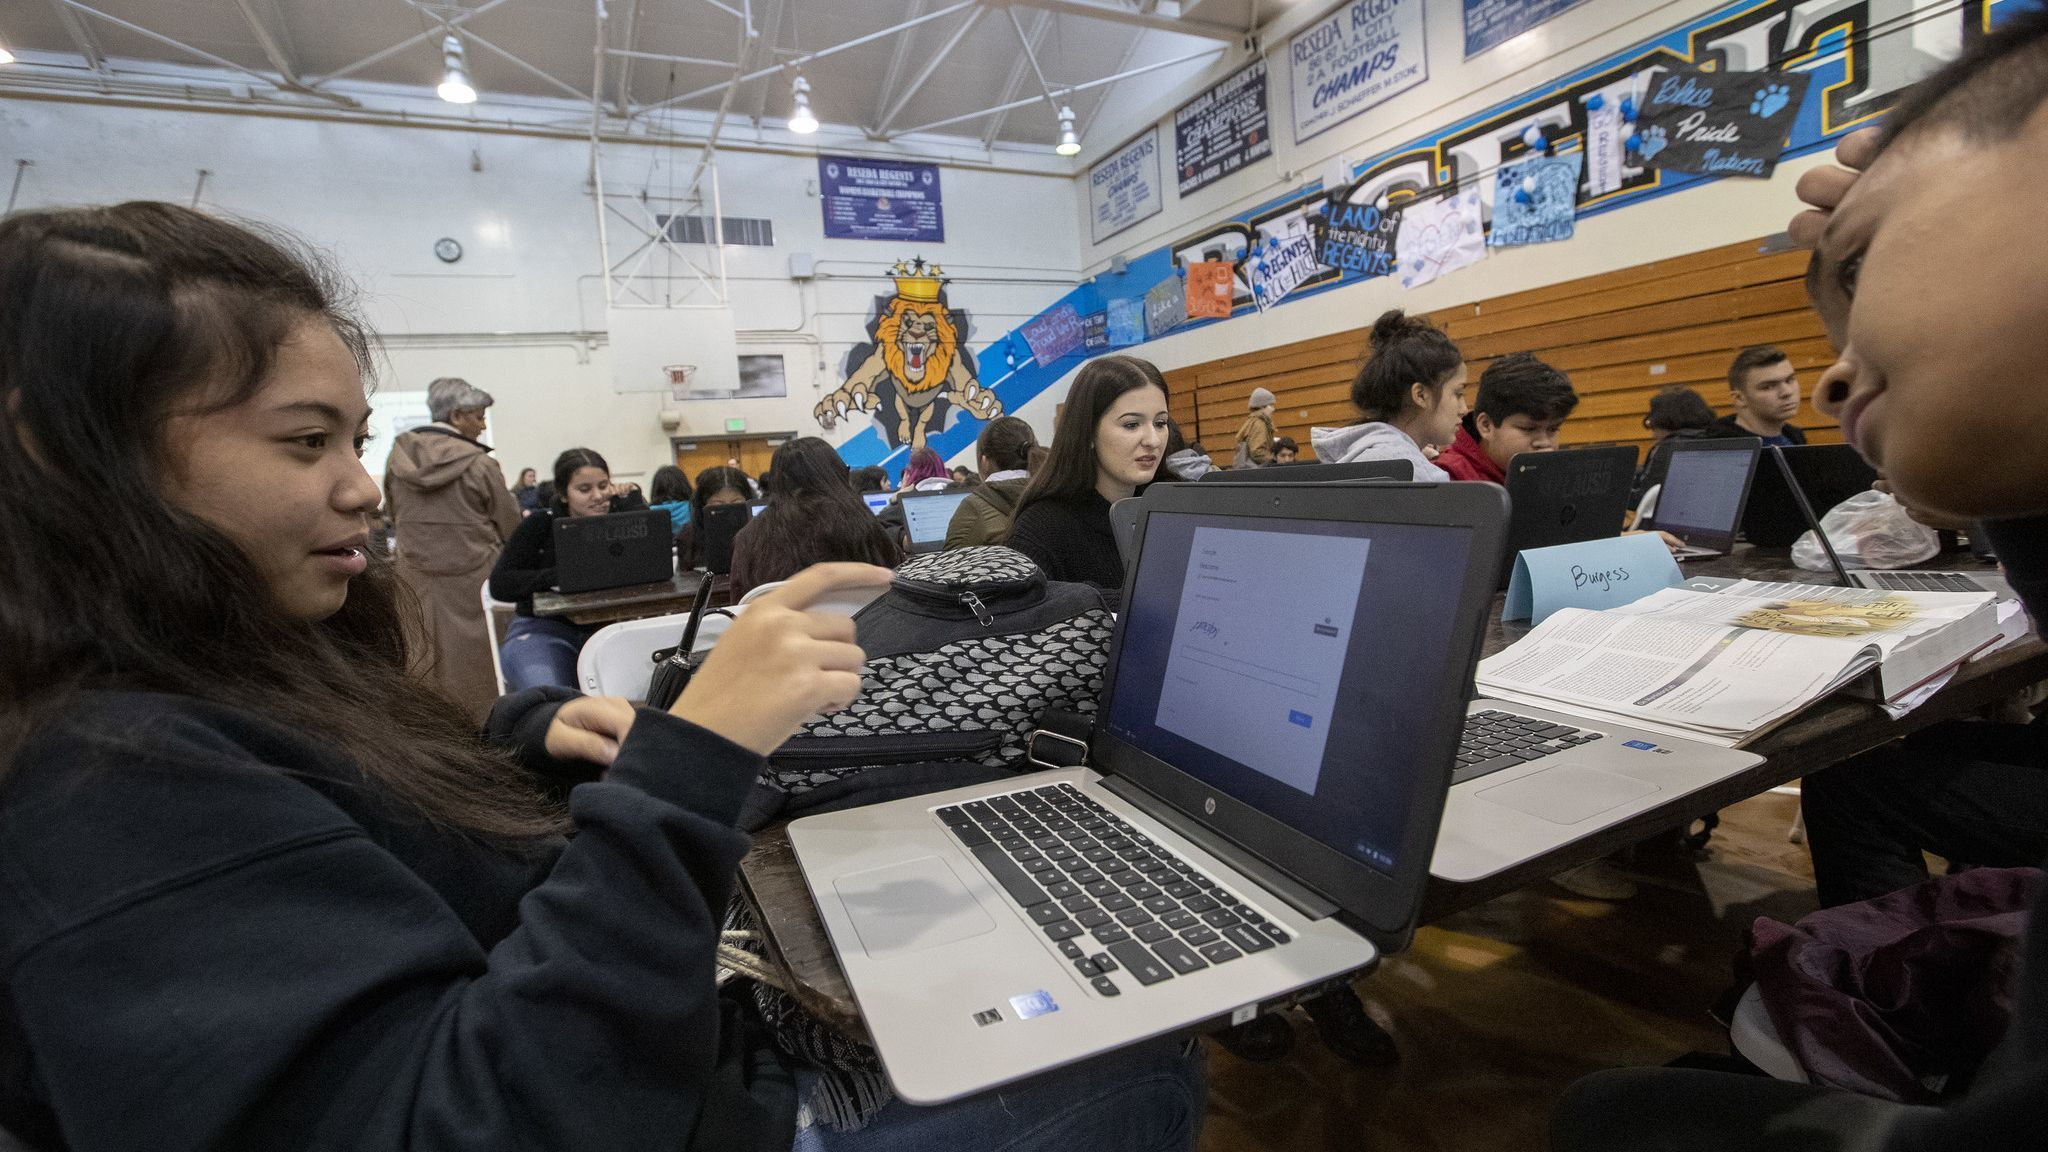 RESEDA, CALIF. — MONDAY, JANUARY 14, 2019: Reseda High School students Jania Garcia, 16, left, and